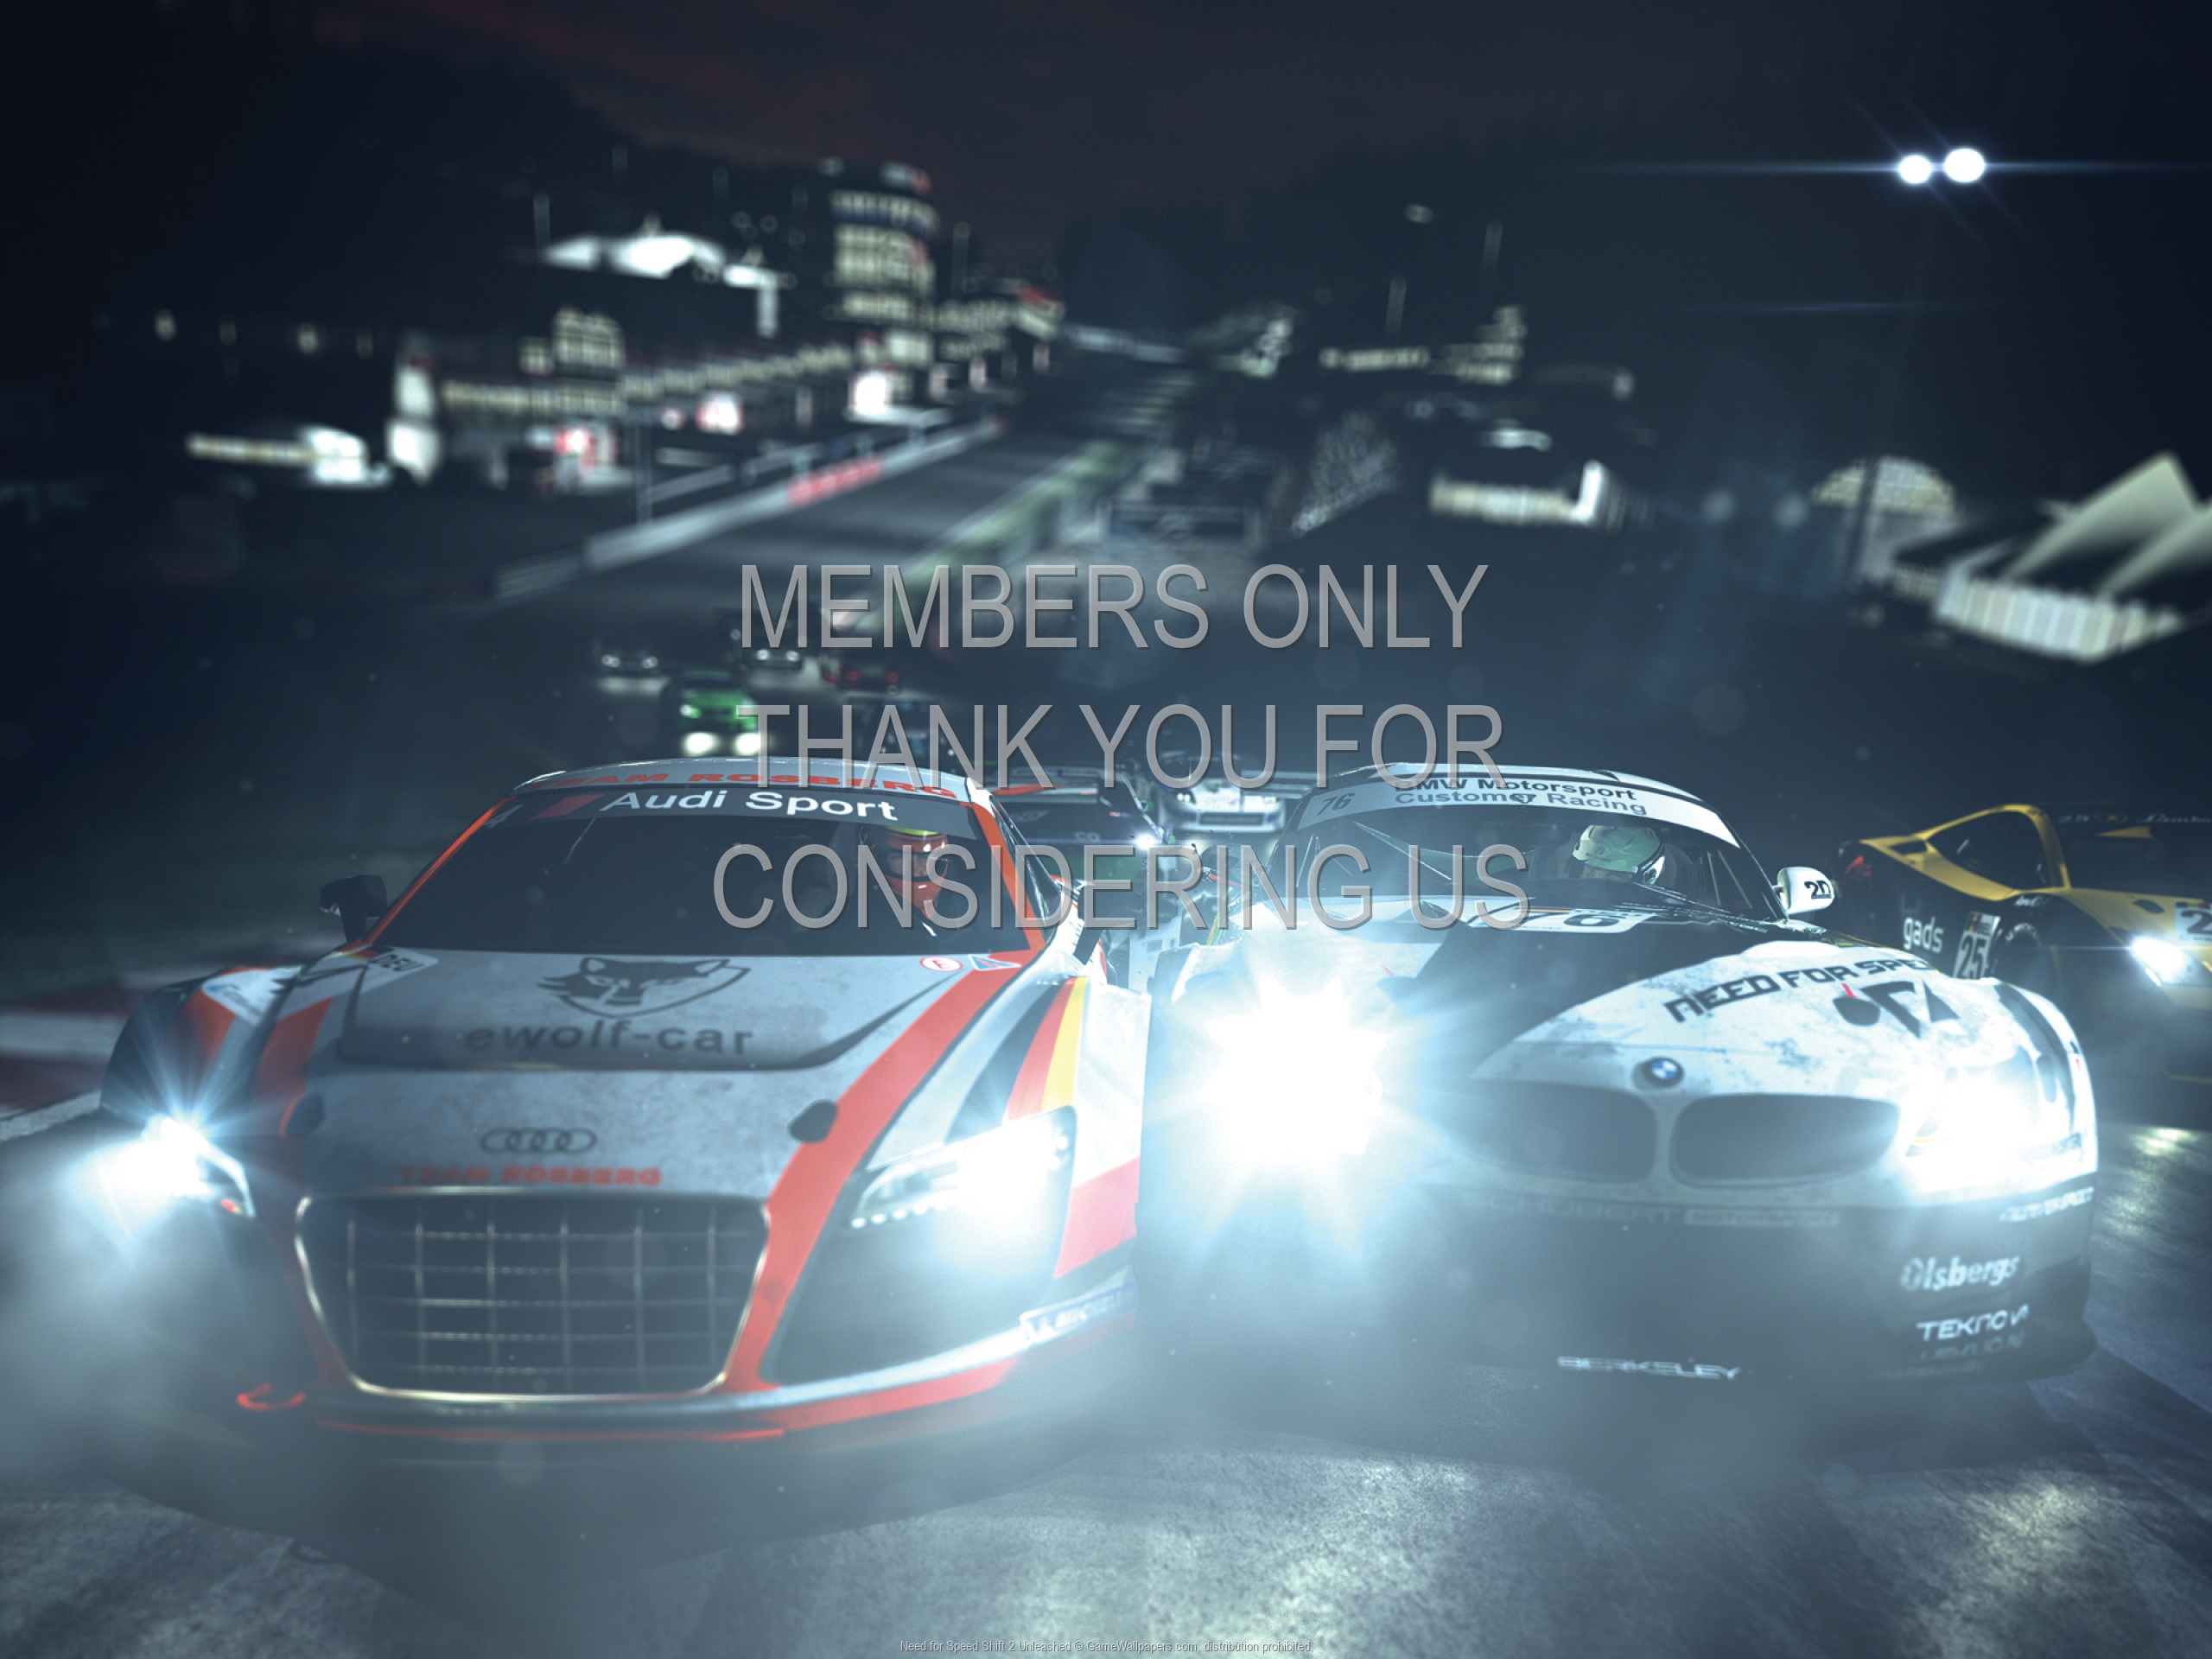 Need for Speed: Shift 2 Unleashed 1920x1080 Mobiele achtergrond 02